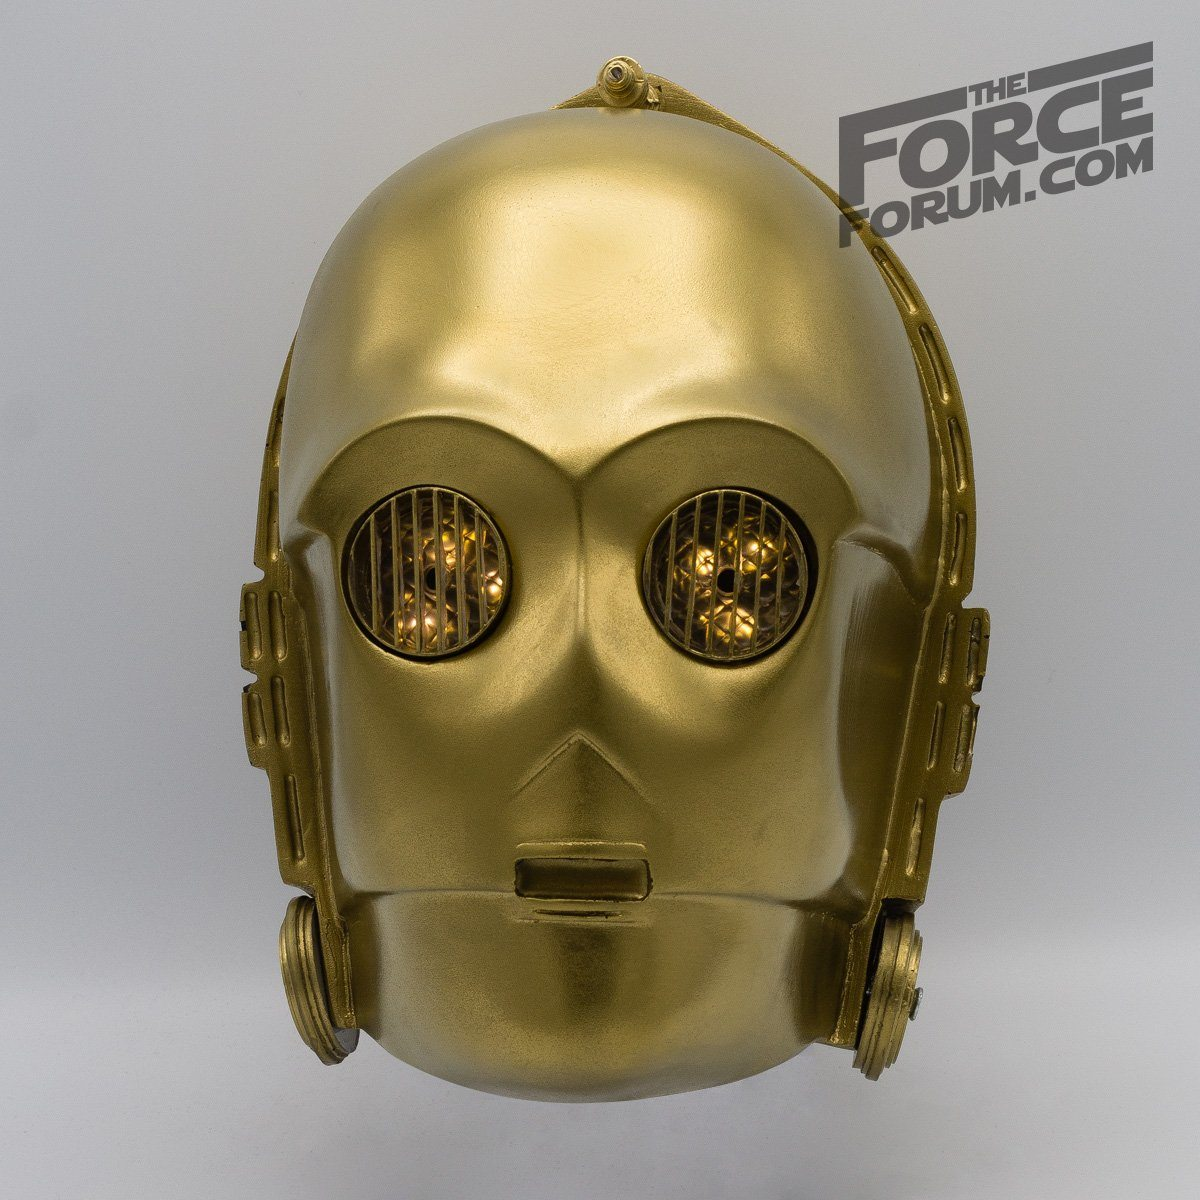 Protocol Robot Head - The Force Forum